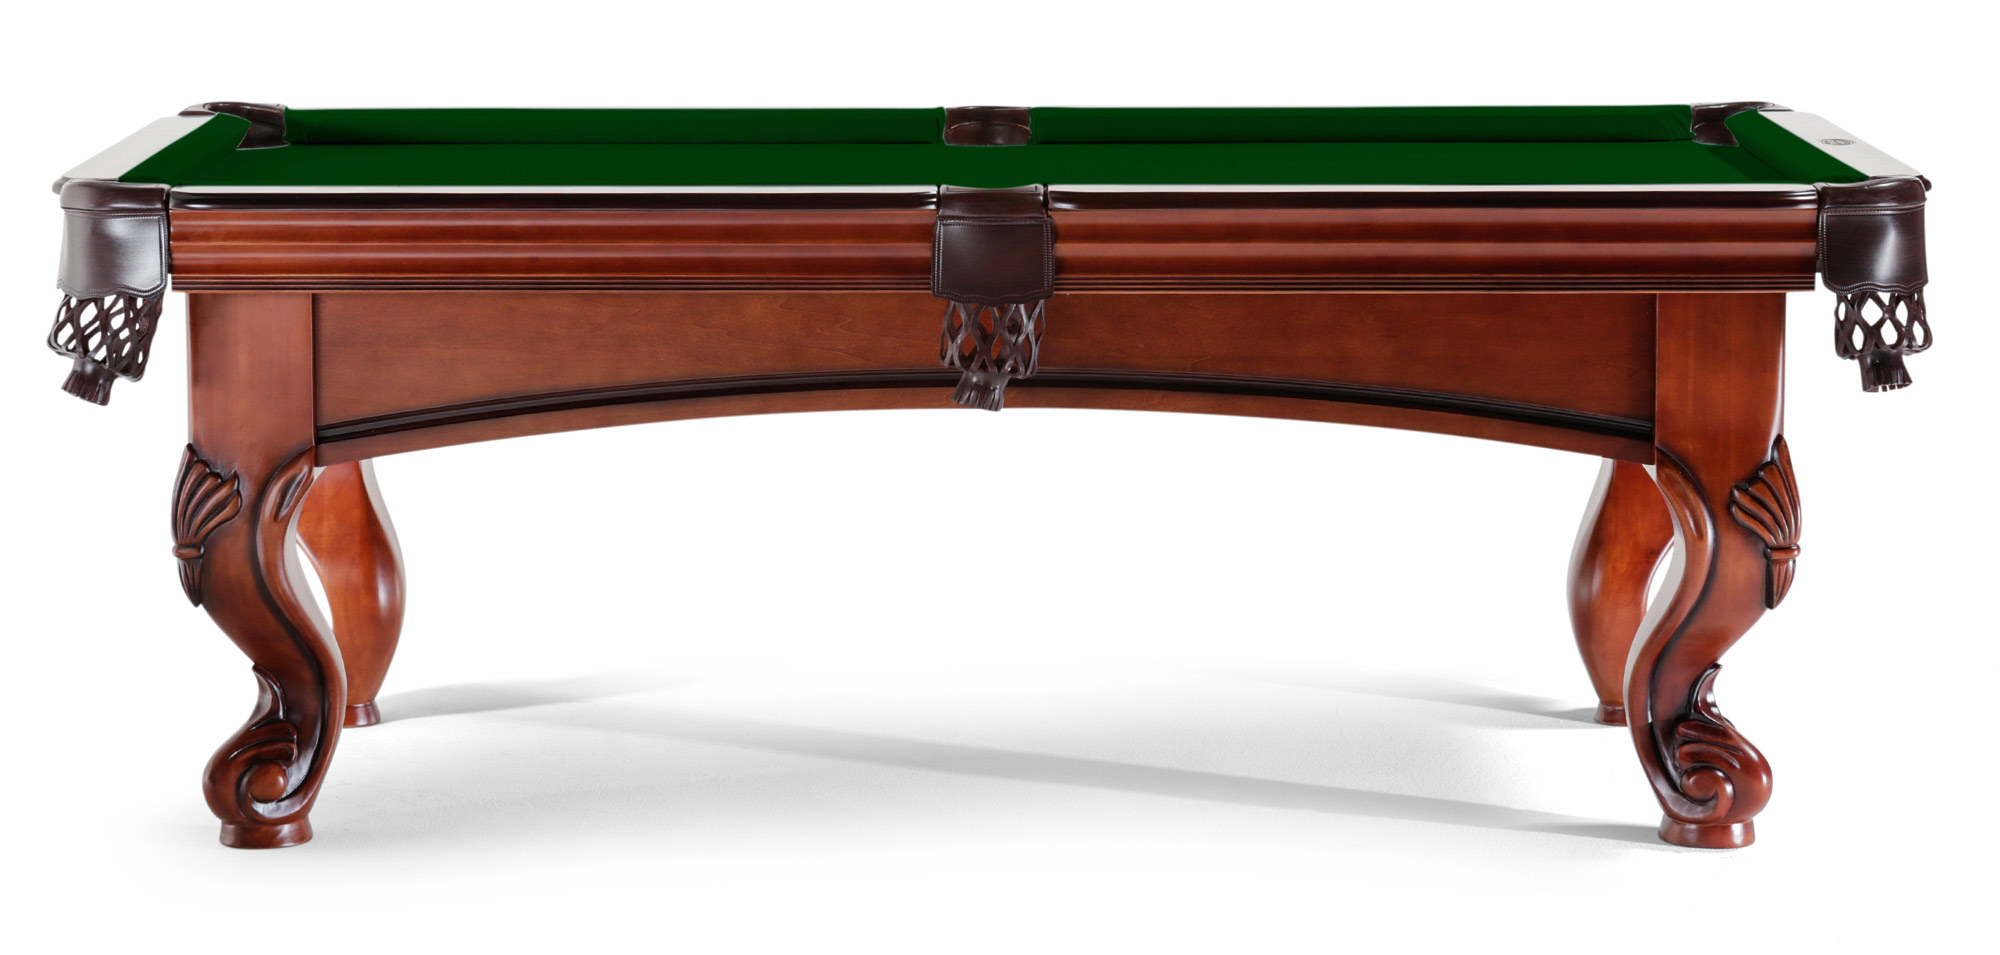 Home Spencer Marston - Cue master pool table